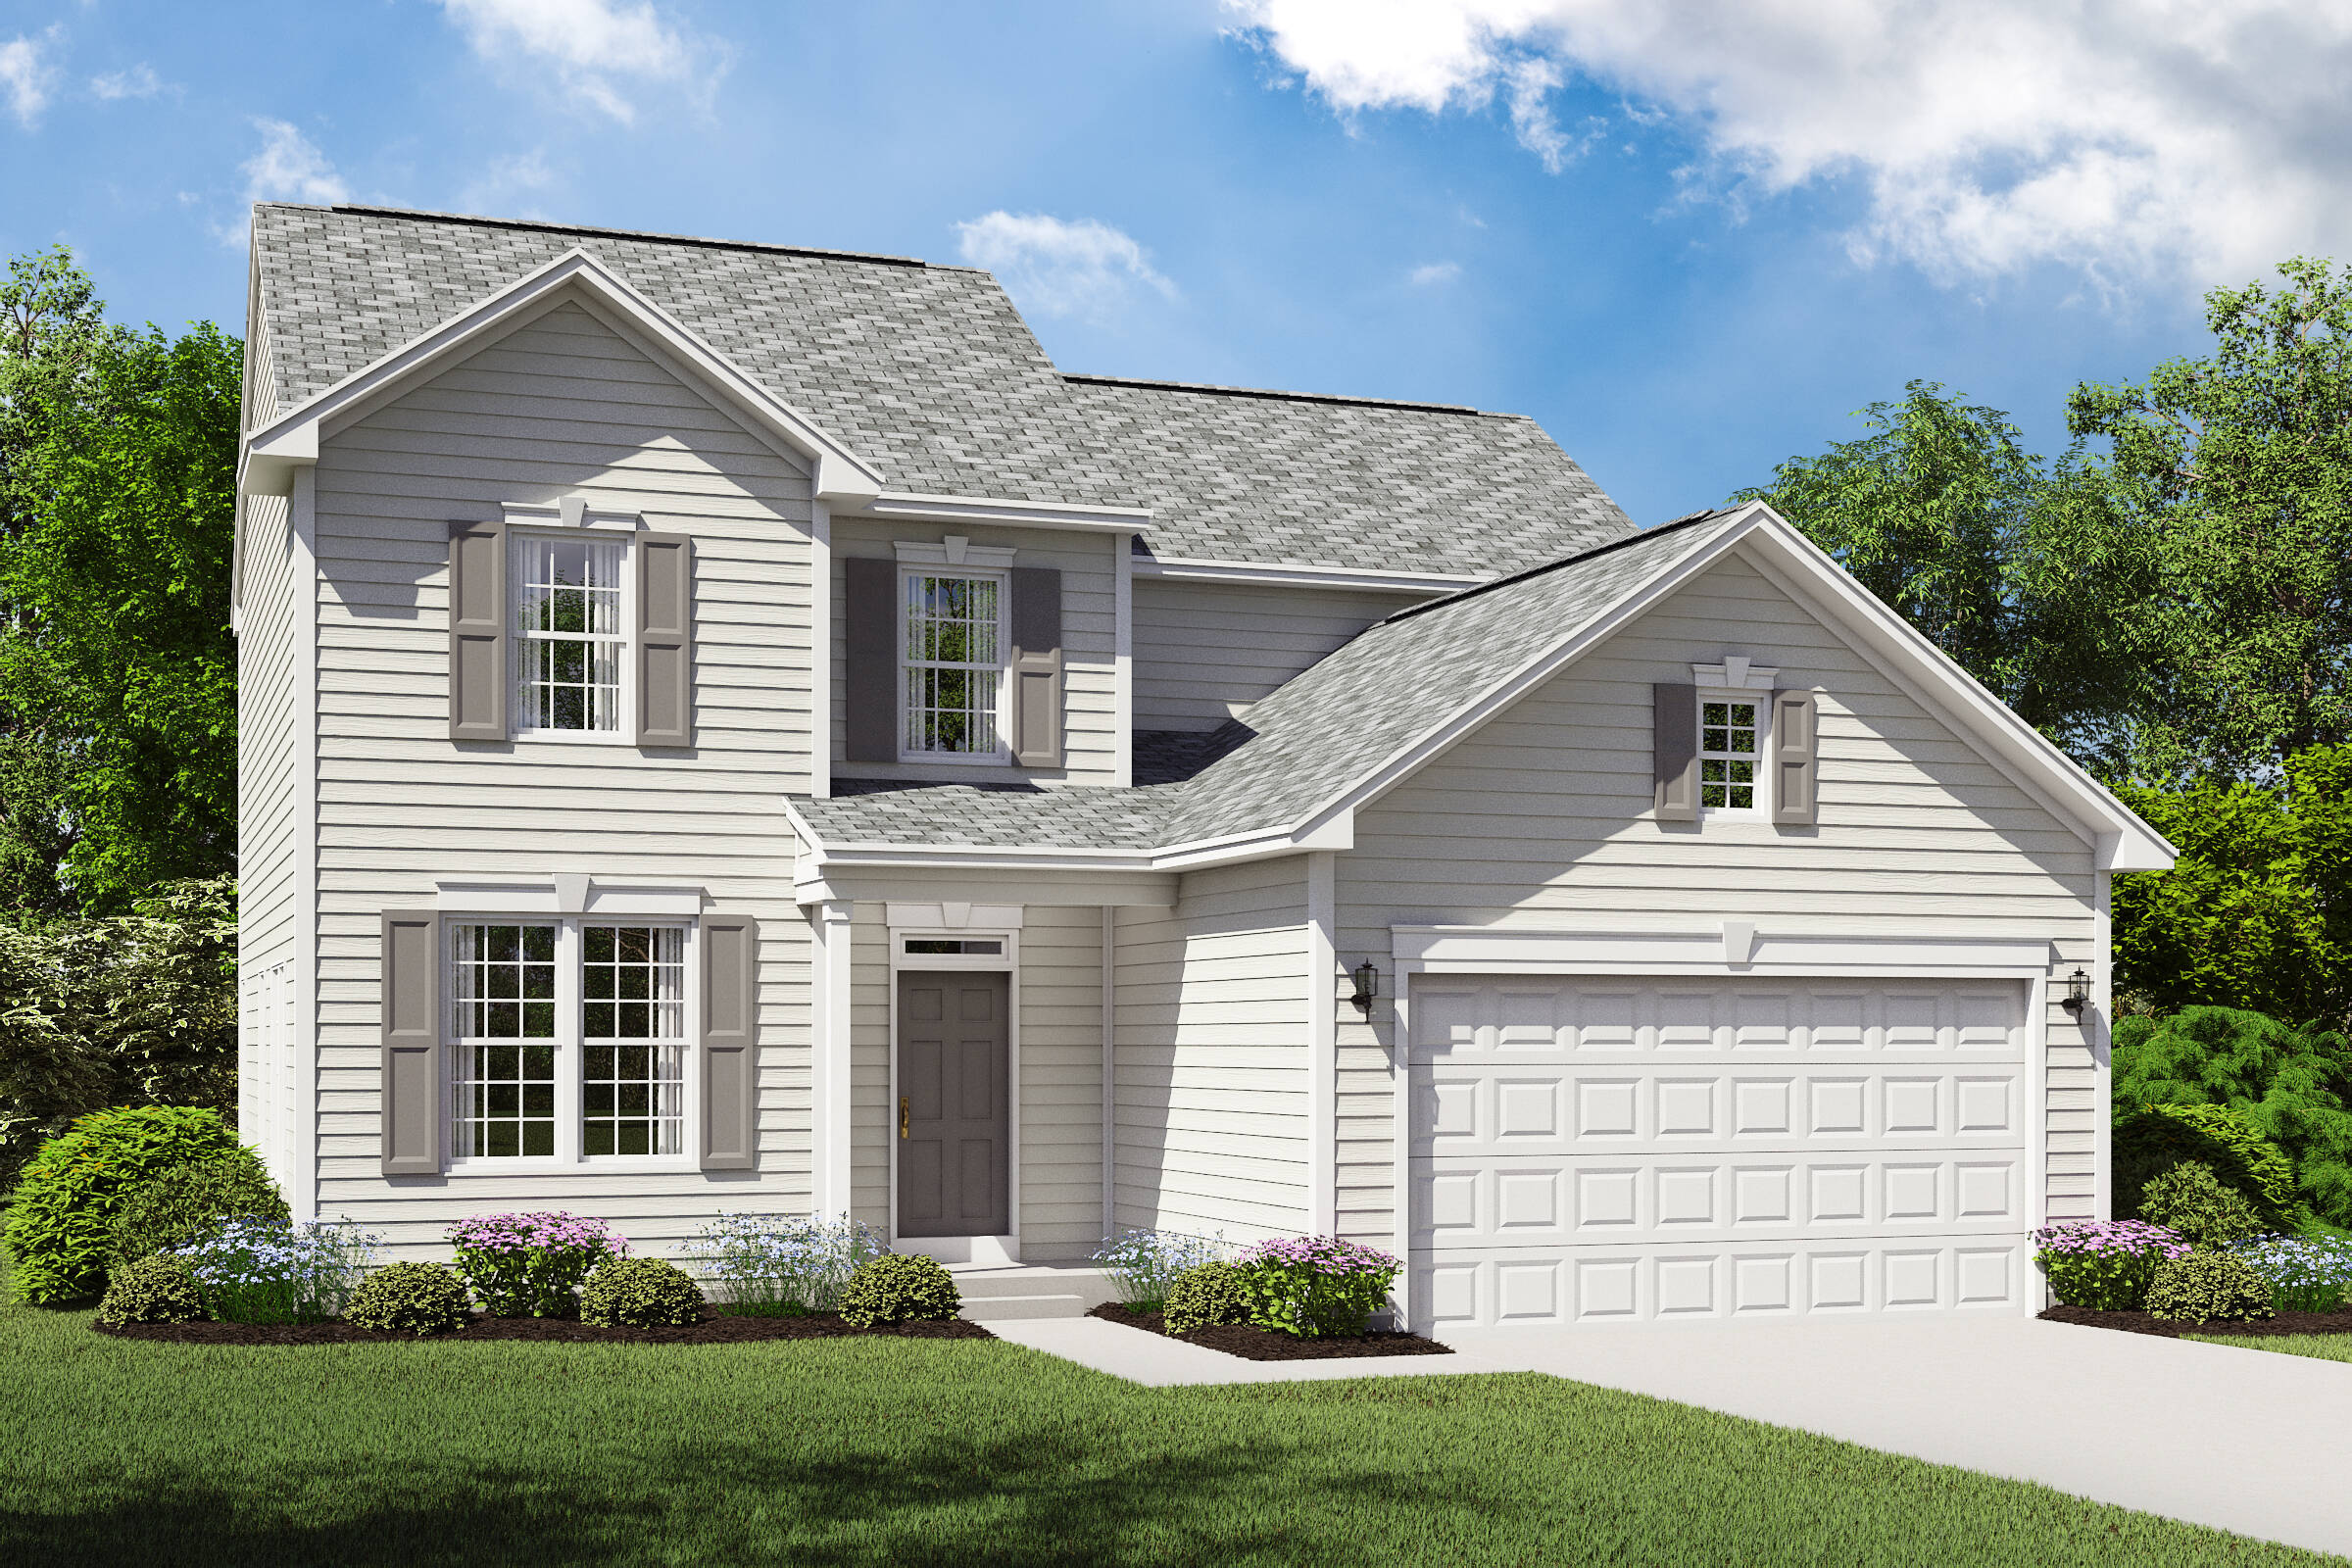 irving bs new home construction northeast ohio